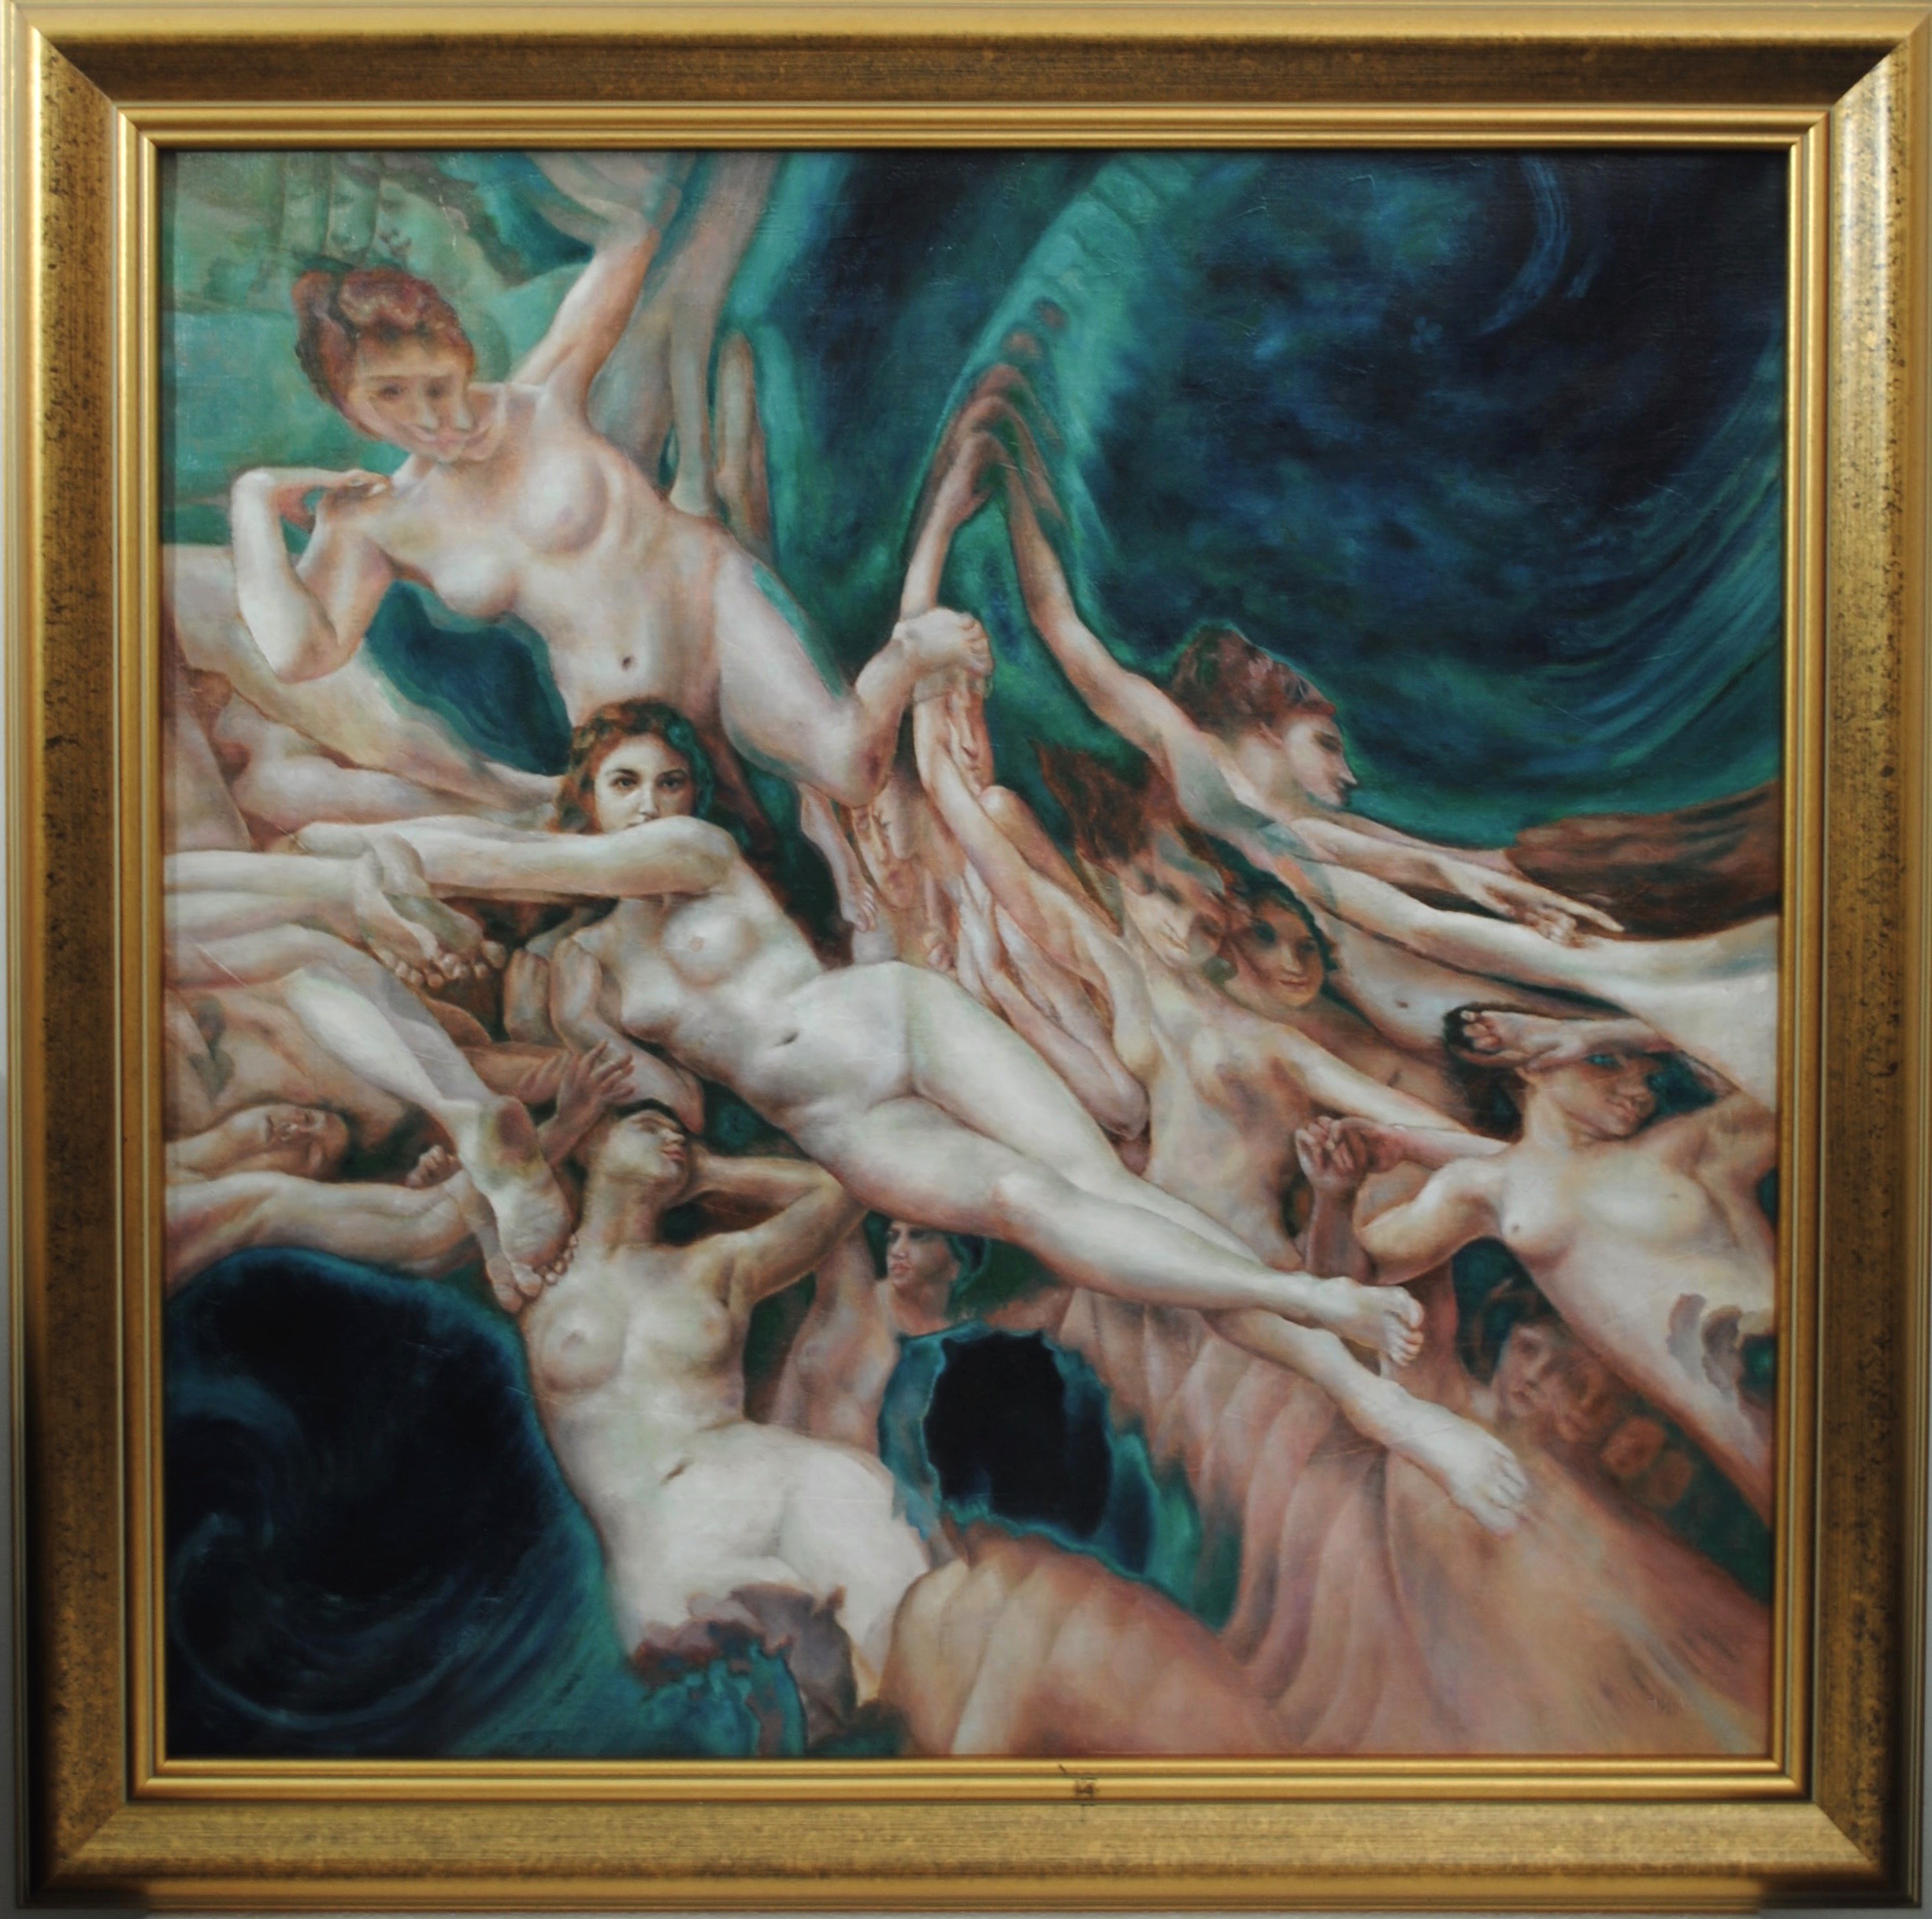 Wave (after Bouguereau), 2018, oil on linen 80 x 80 cm.